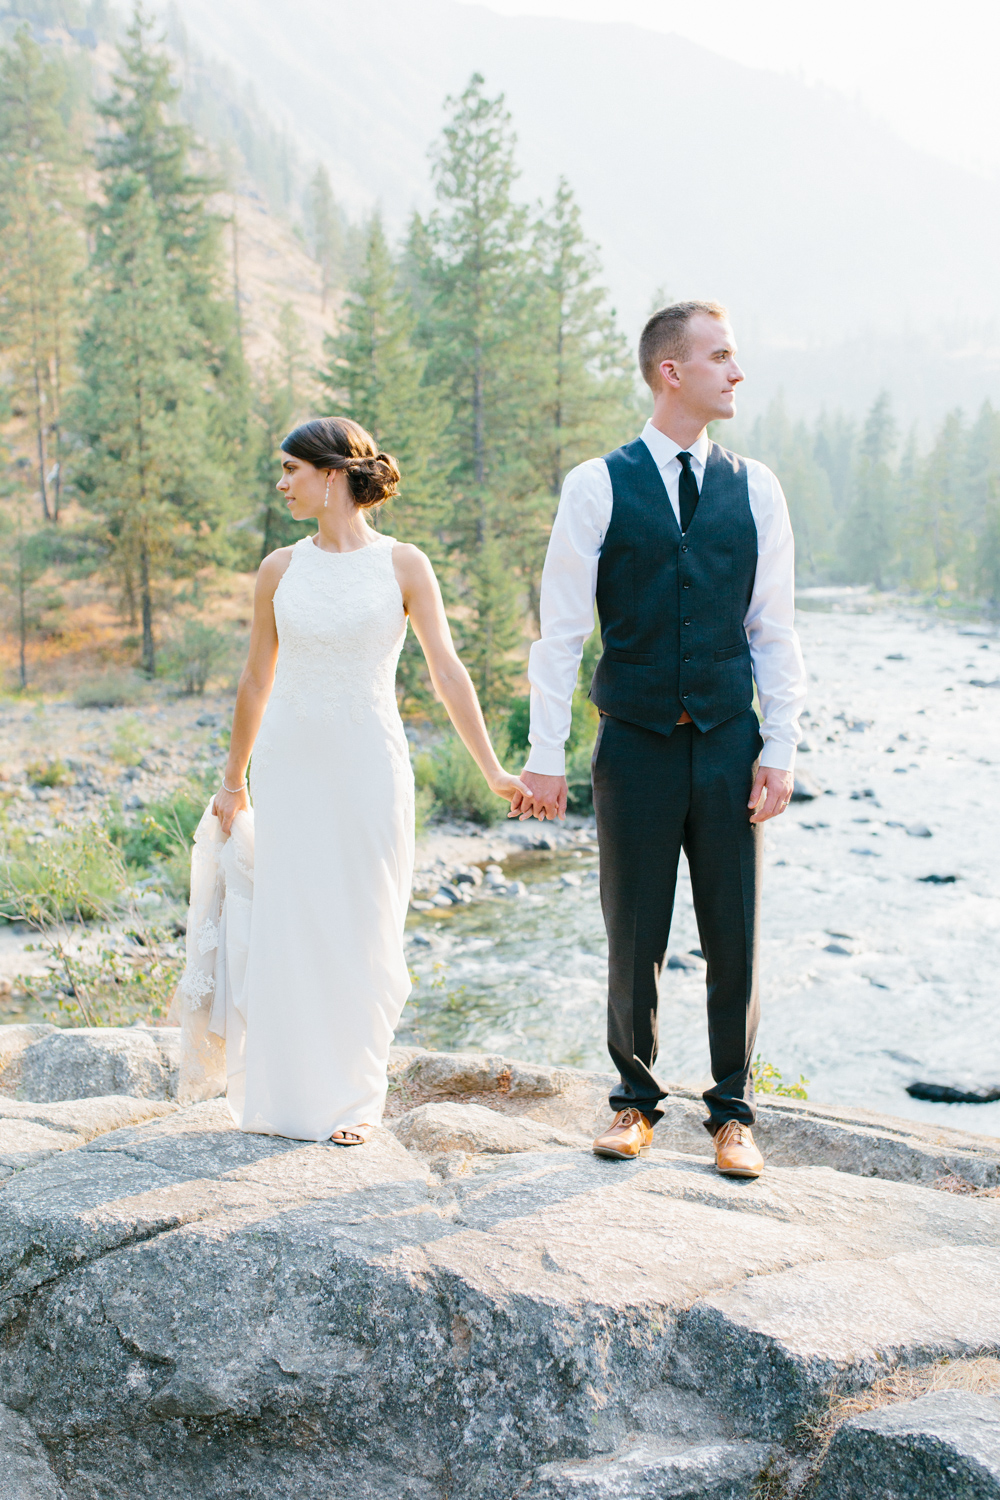 Grey and White Wedding in the Mountains of Leavenworth, Washington | Sleeping Lady | Classic and Timeless Wedding | VSCO | Stunning Mountain Top Bride and Groom Portraits on the Icicle River.jpg-1416.jpg